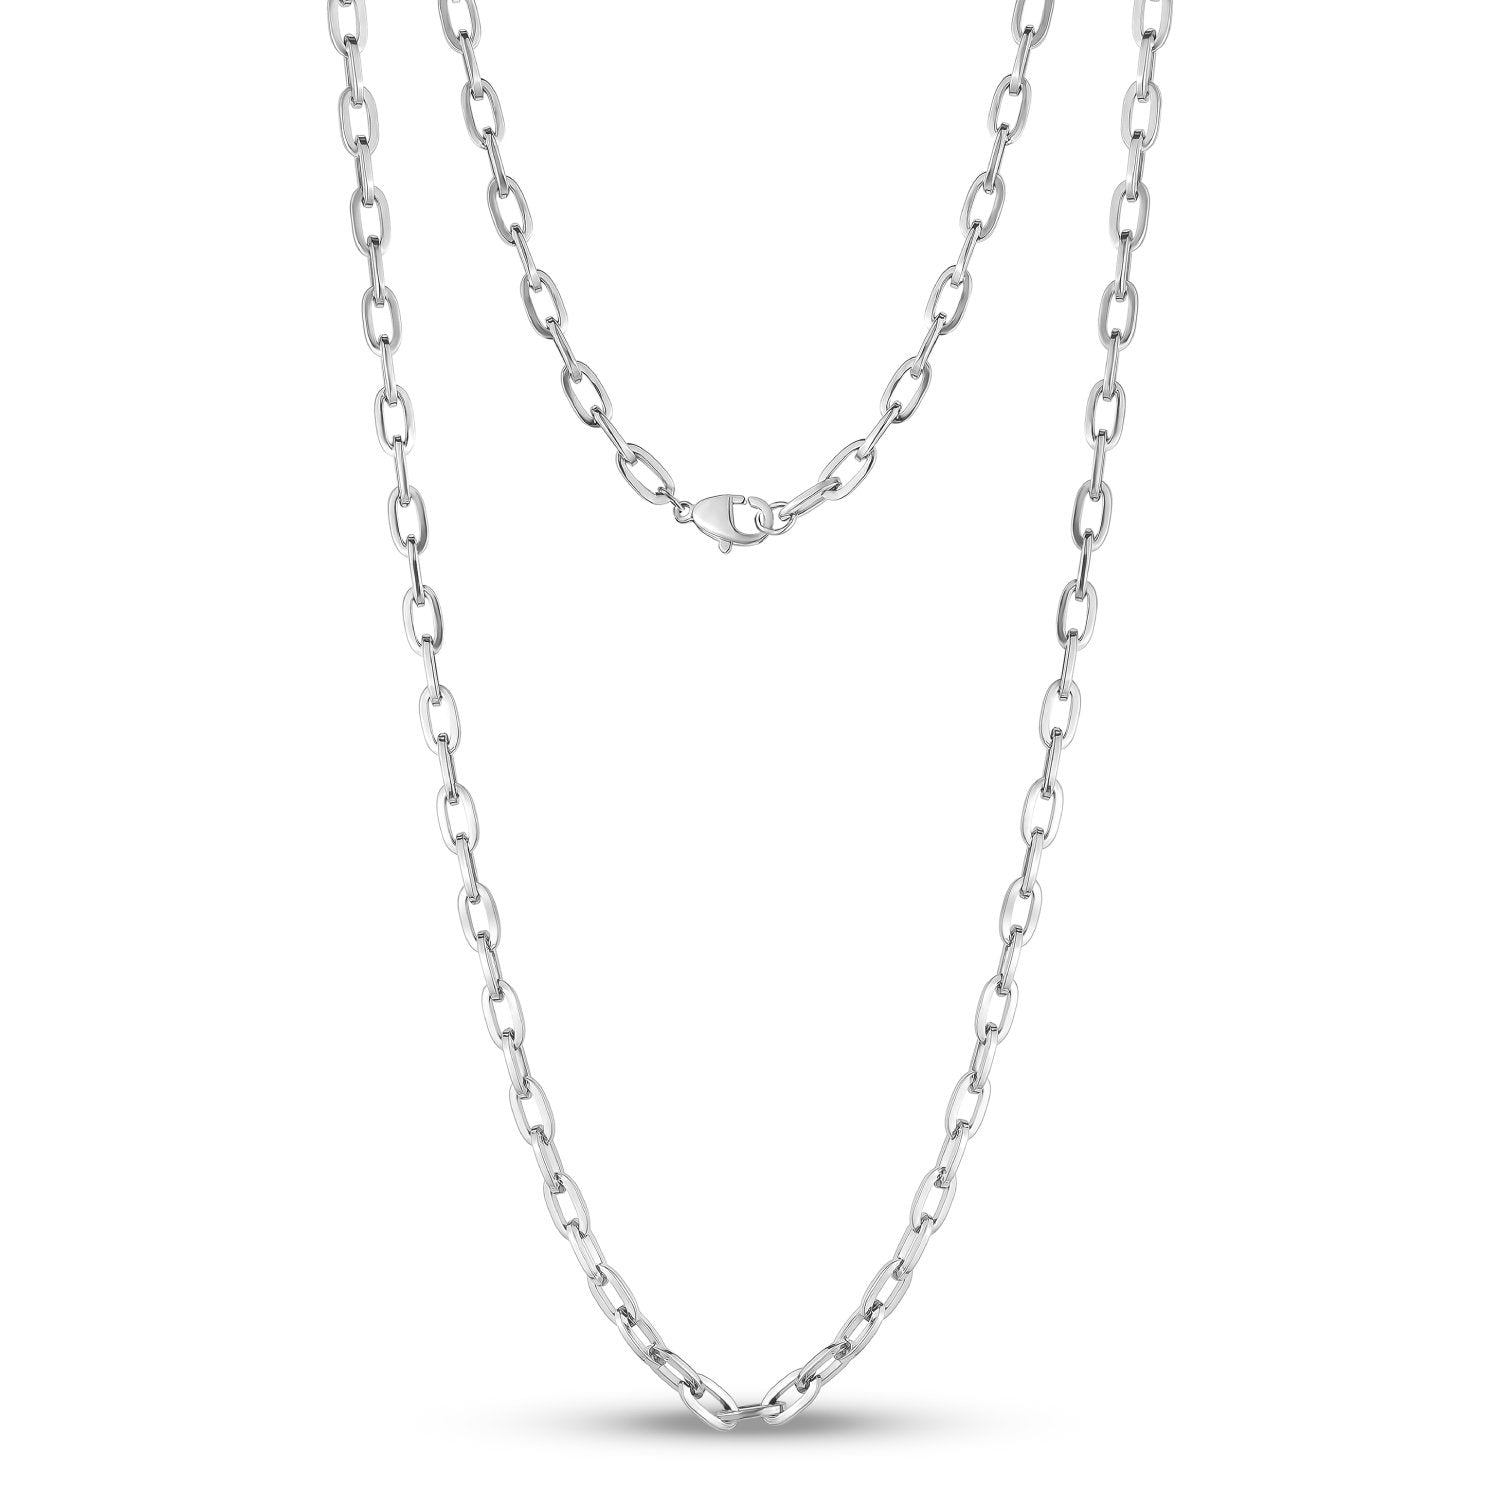 Men Necklace - 5mm Stainless Steel Oval Link Chain Necklace